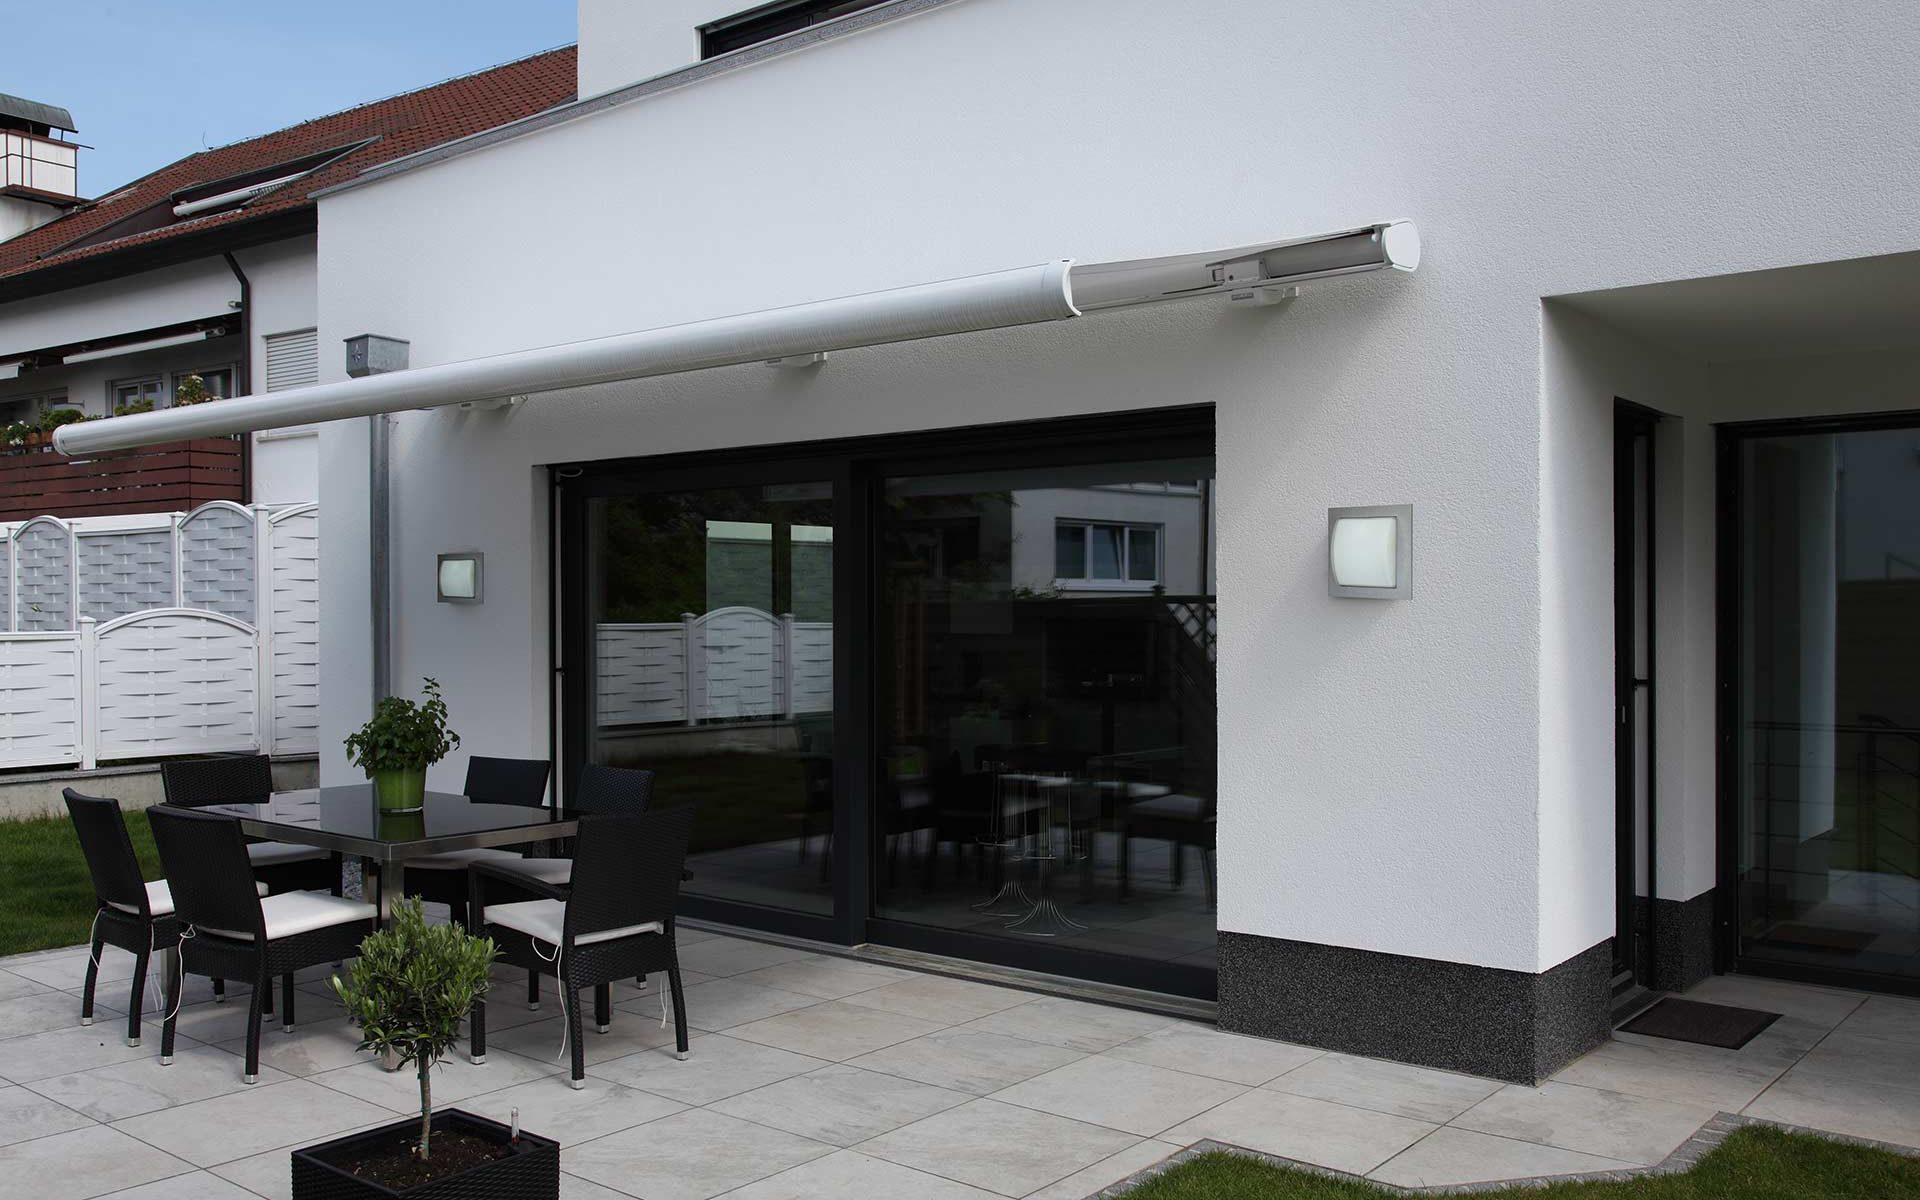 A modern terrace with an awning is visually completed by two Albert wall lights.